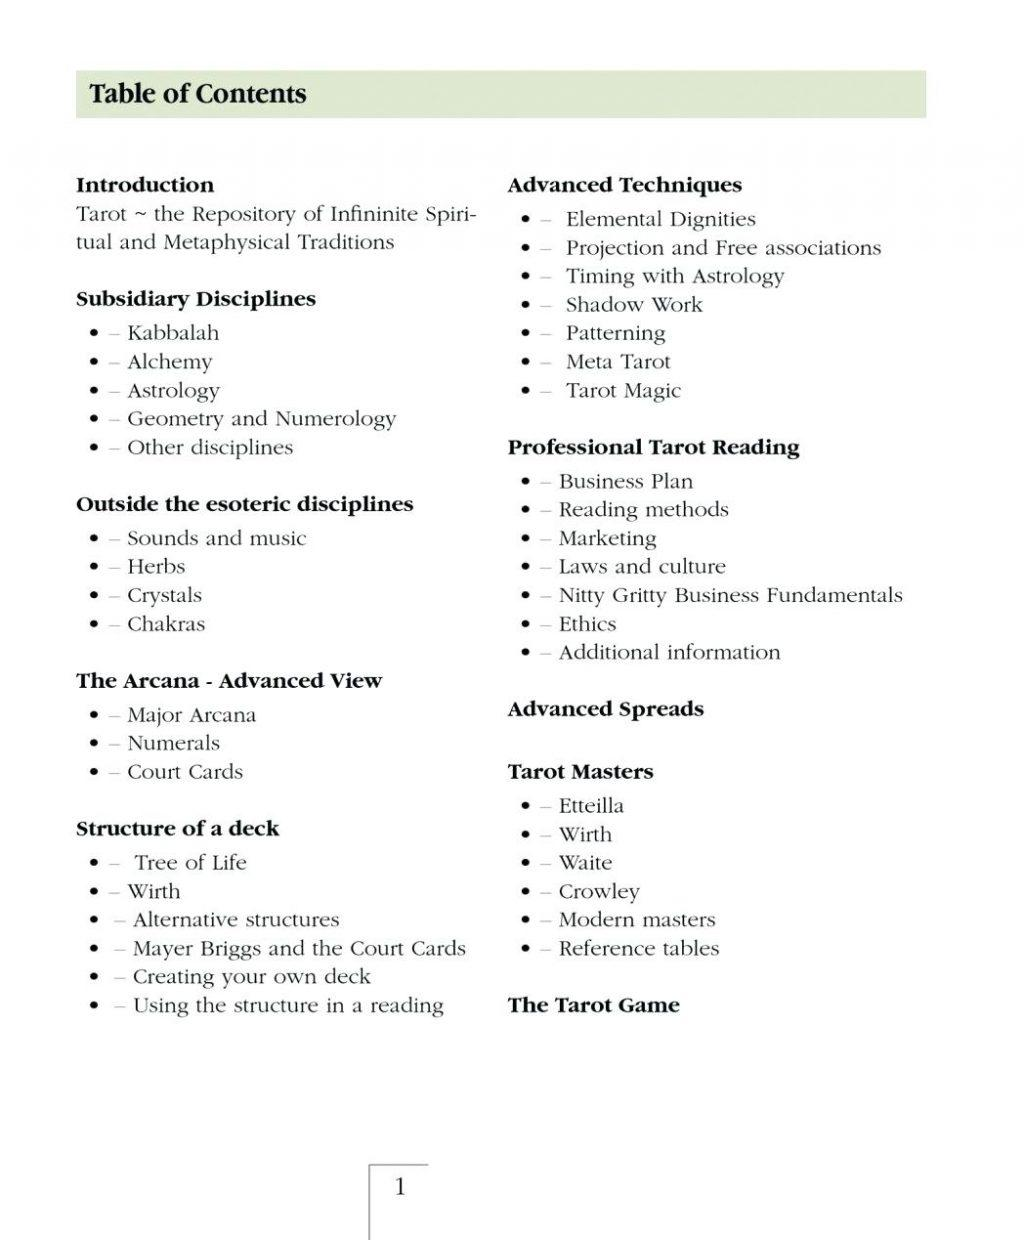 Film Production Company Business Plan Template Pdf